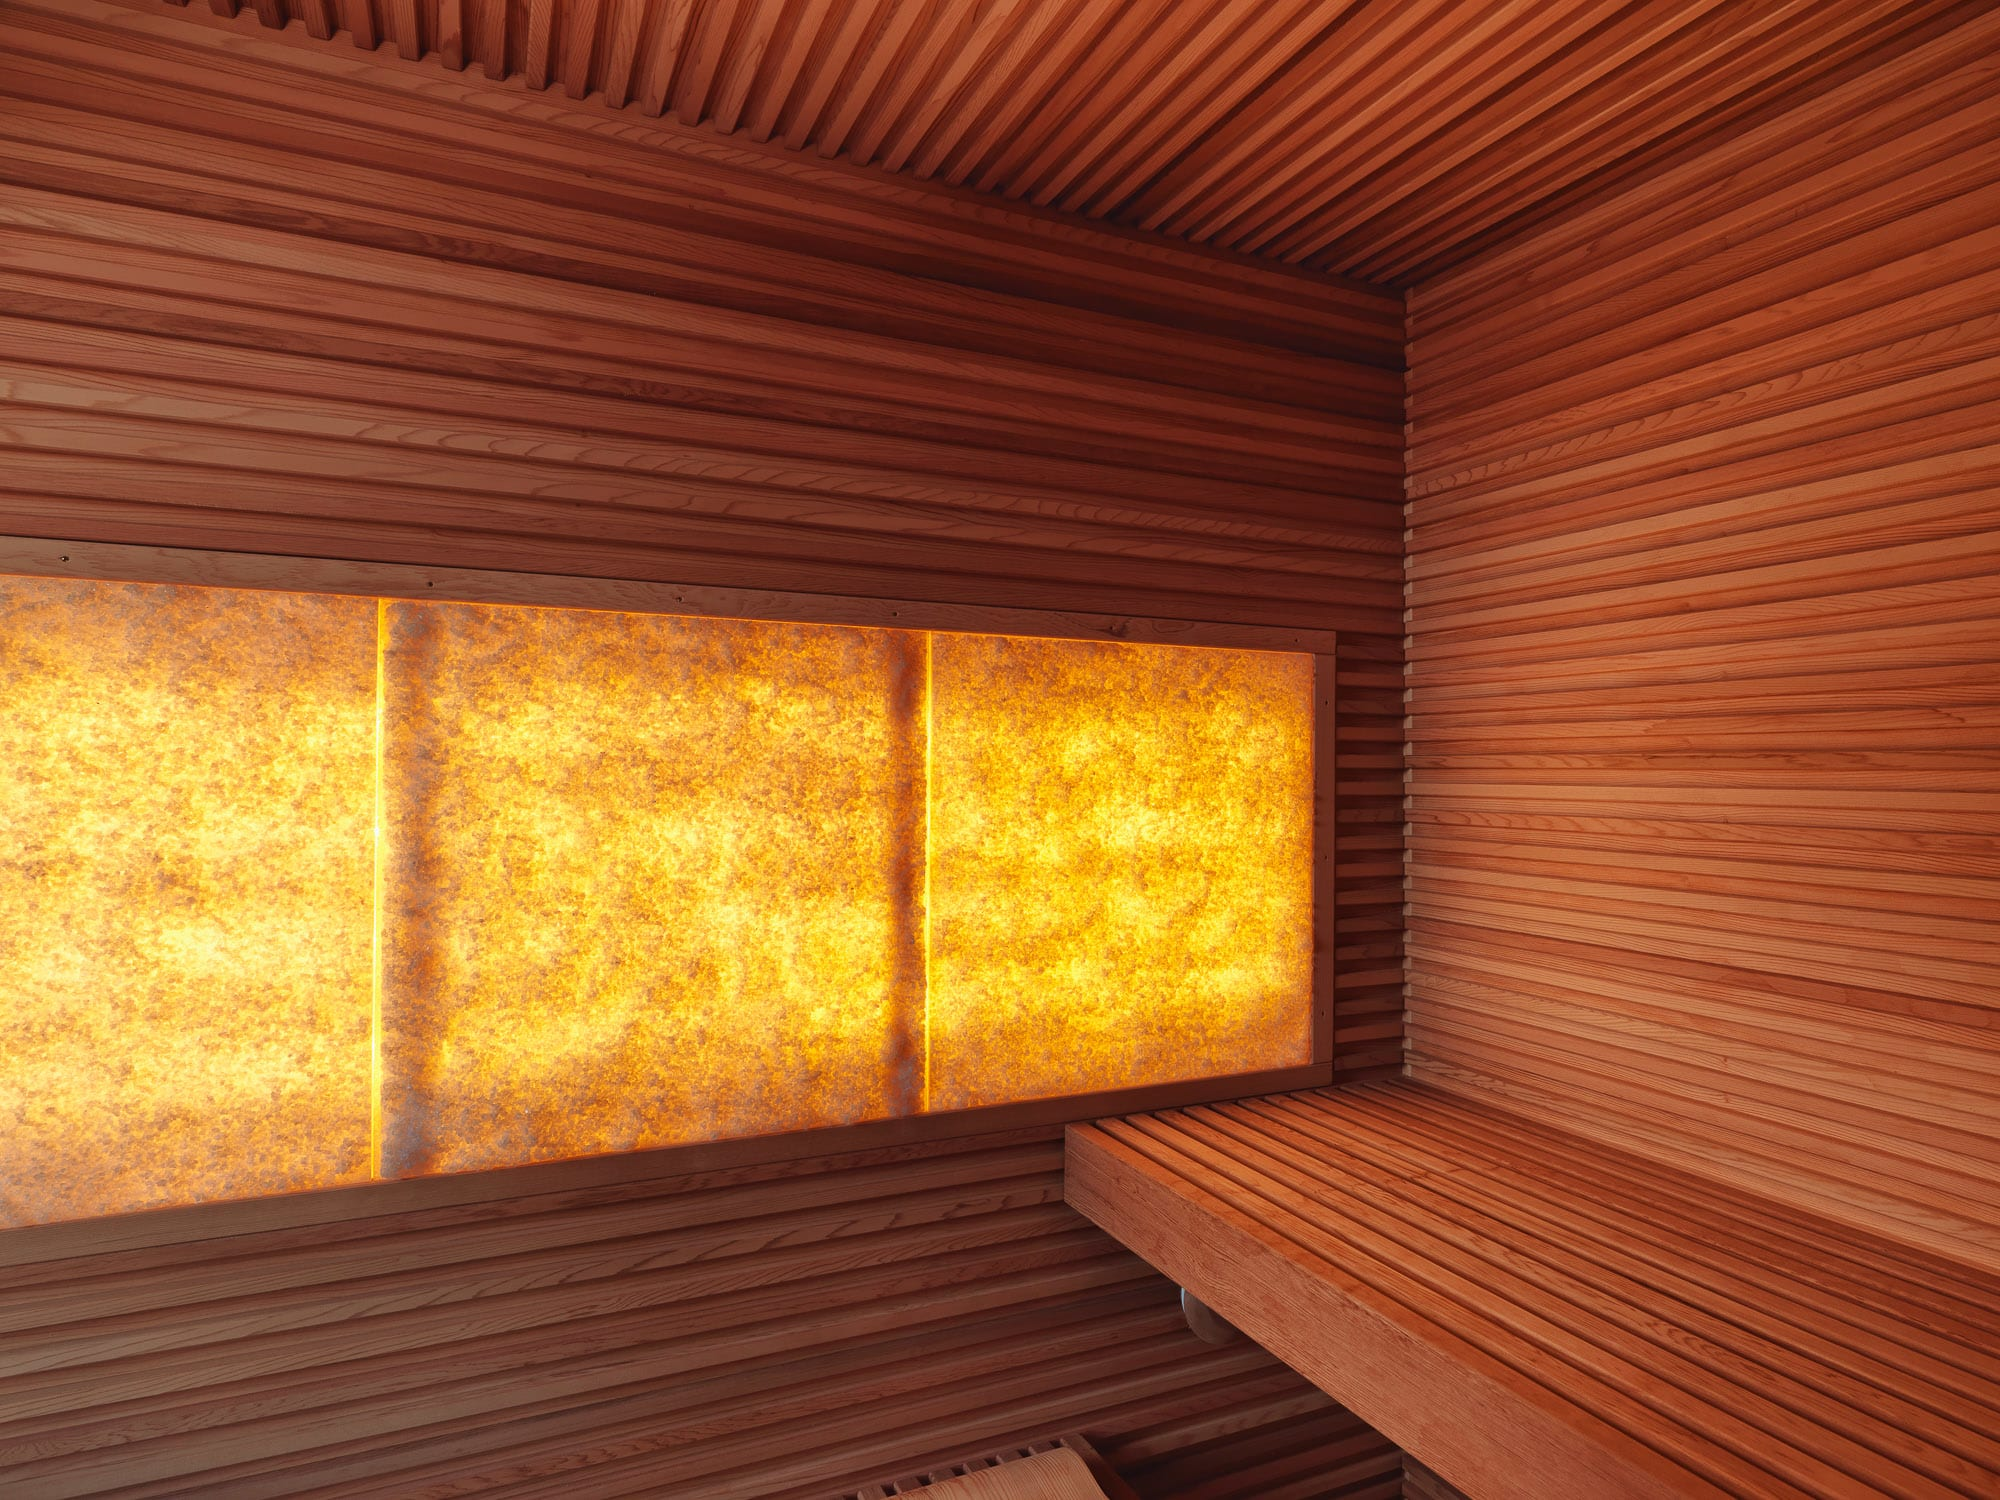 Saunas  A collection curated by Divisare